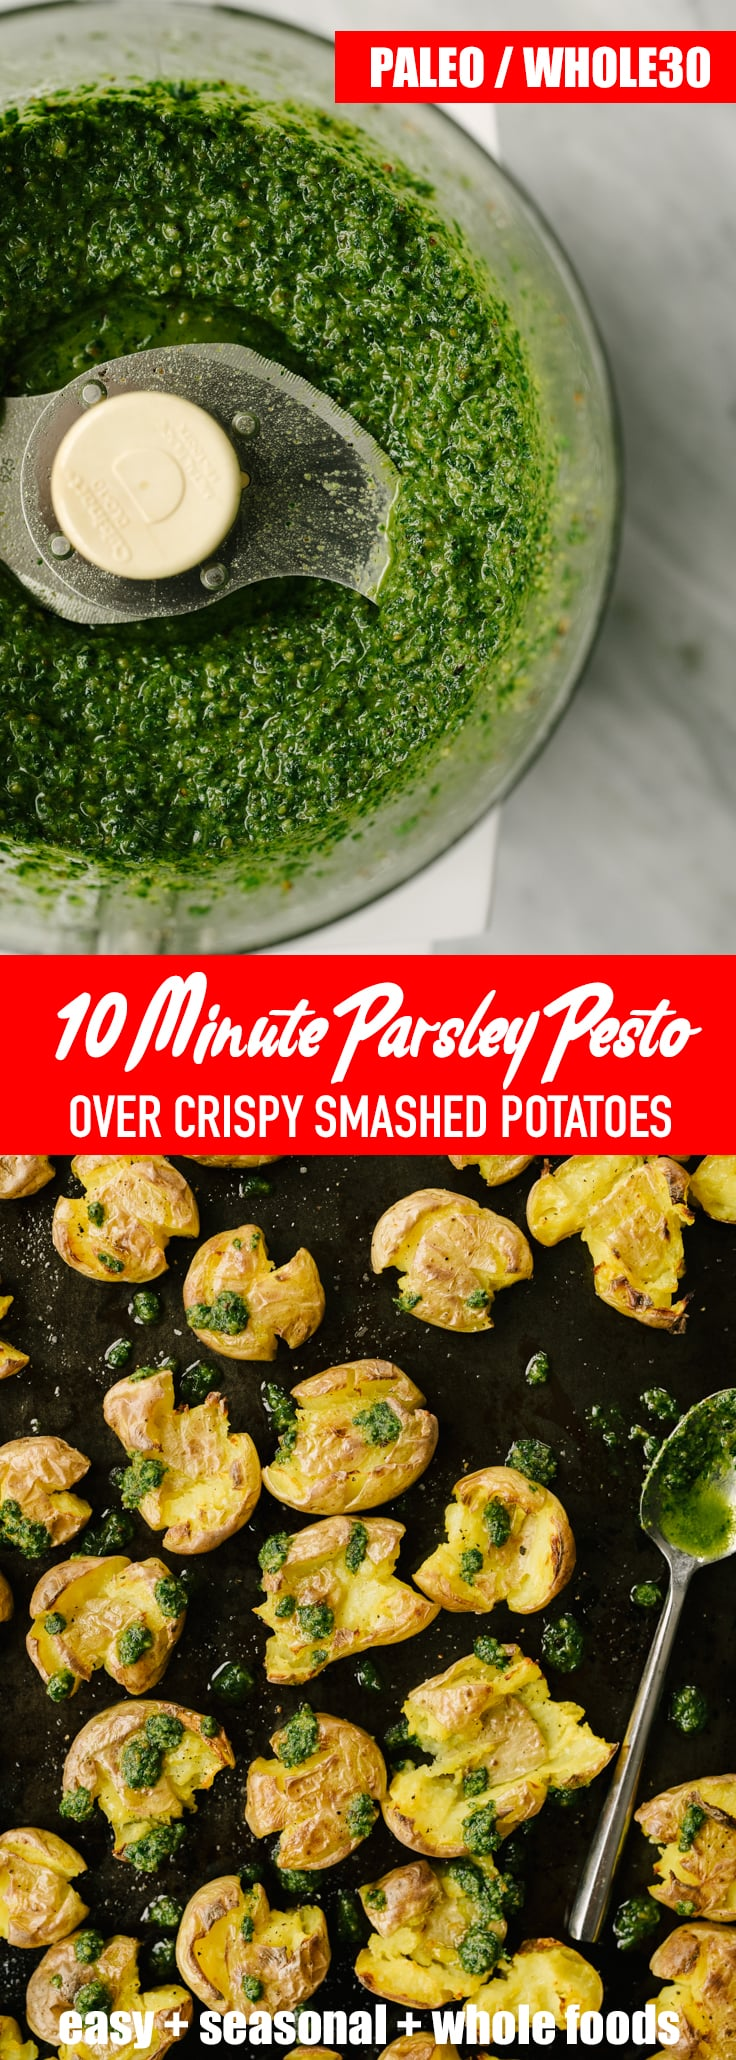 This Whole30 compliant parsley pesto is literal awesome-sauce. It's my go-to winter condiment for grilled protein, roasted potatoes or vegetables, and so much more. It's fast, easy, nutritious, bright and tangy. You'll want to put this on everything! Get more easy, seasonal, Whole30, paleo, and real food recipes at oursaltykitchen.com. #whole30 #paleo #realfood #pesto #condiment #recipe